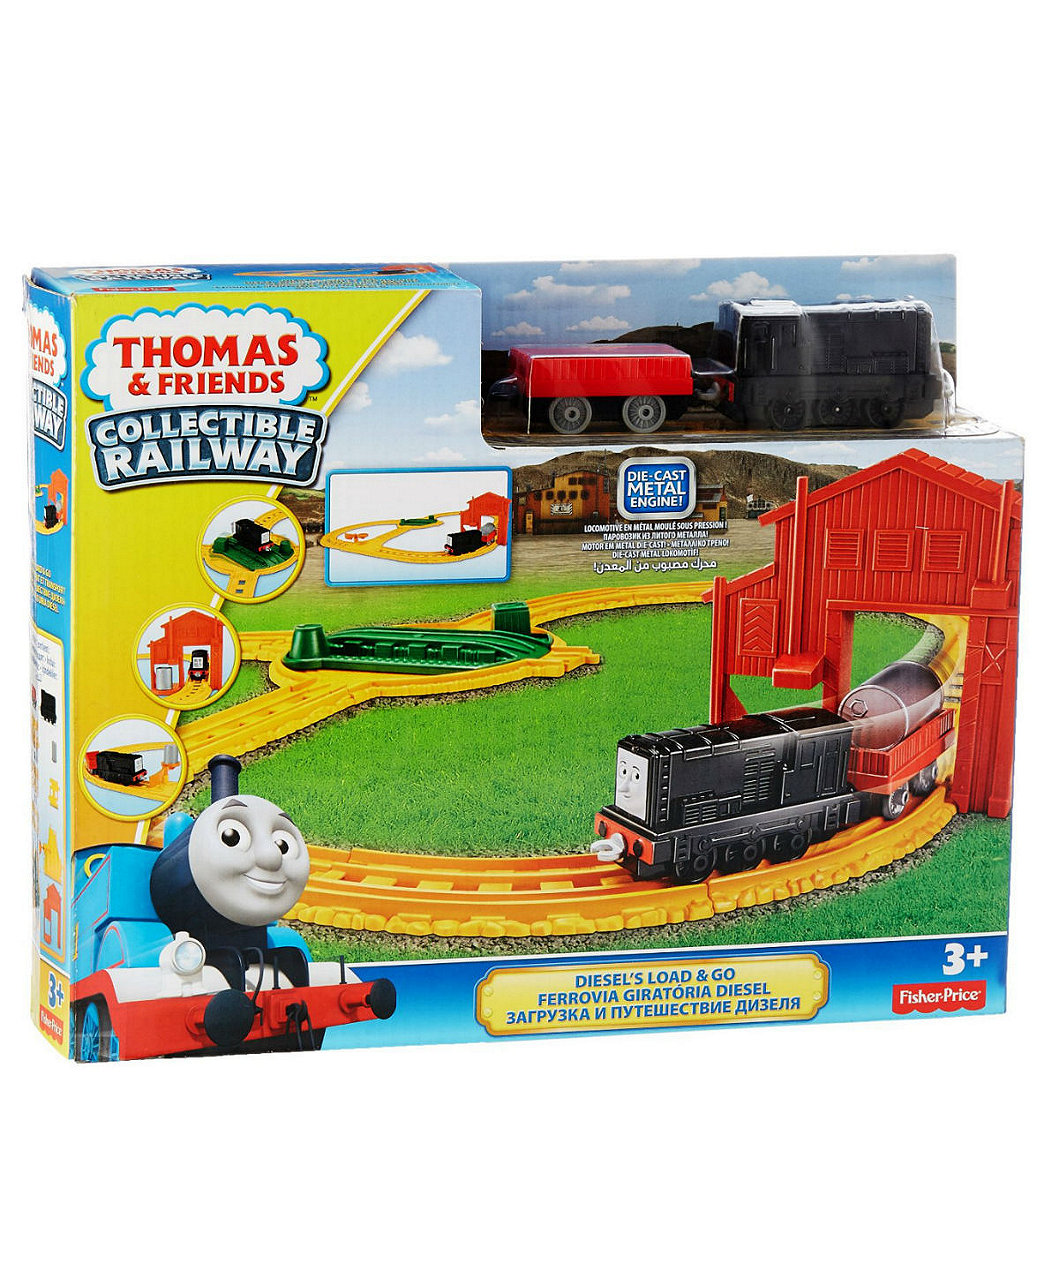 Thomas & Friends Collectible Railway Diesel\'s Load and Go - Multi ...